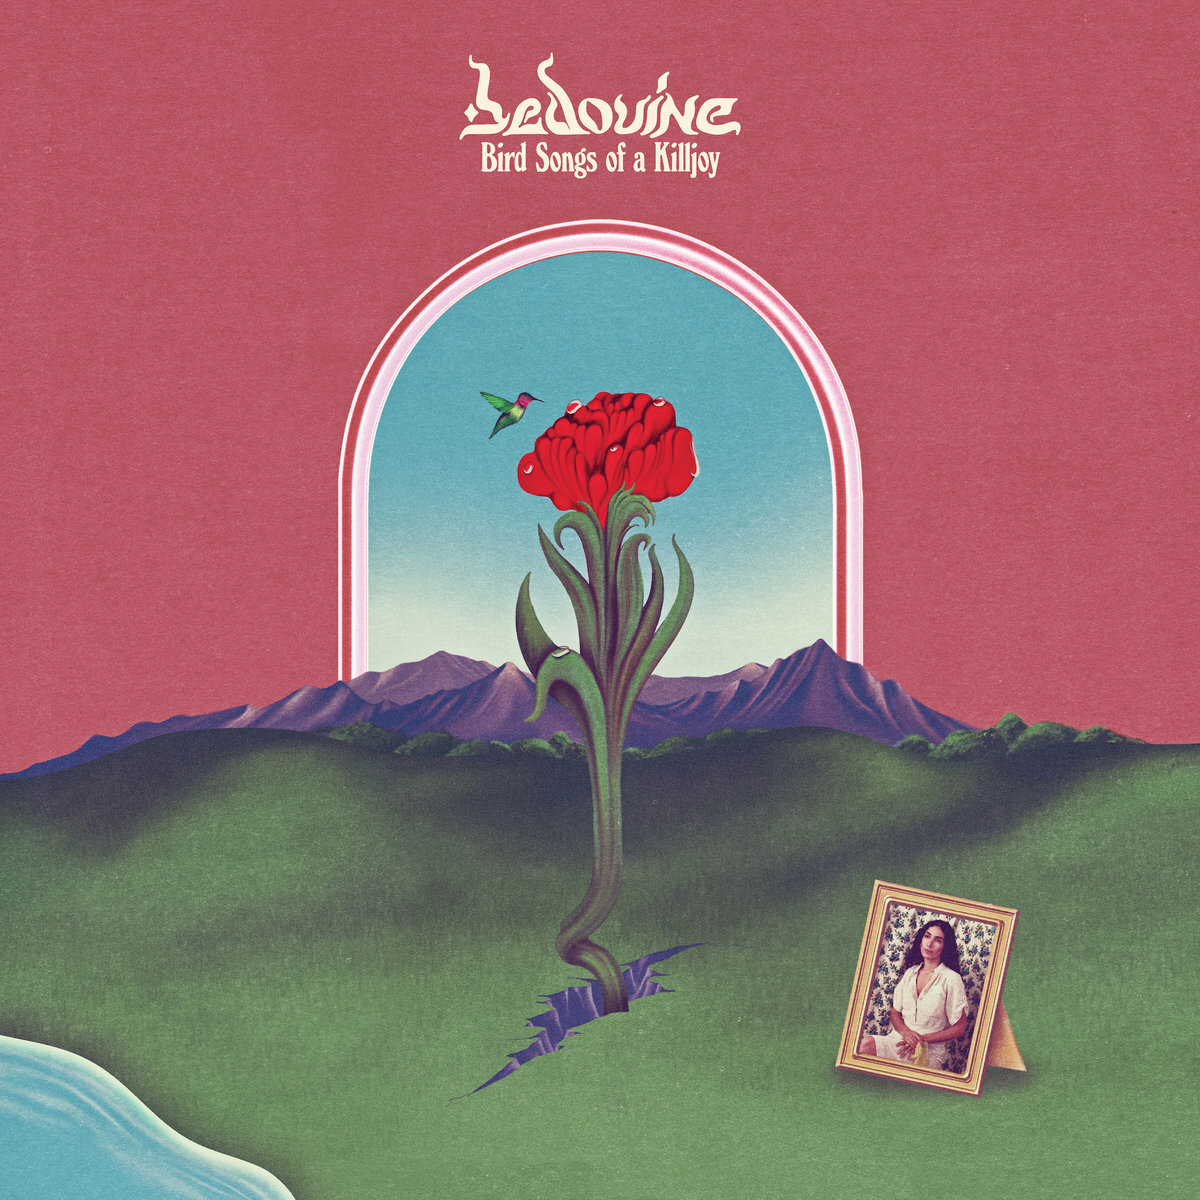 Bedouine / Bird Songs of a Killjoy(LP)